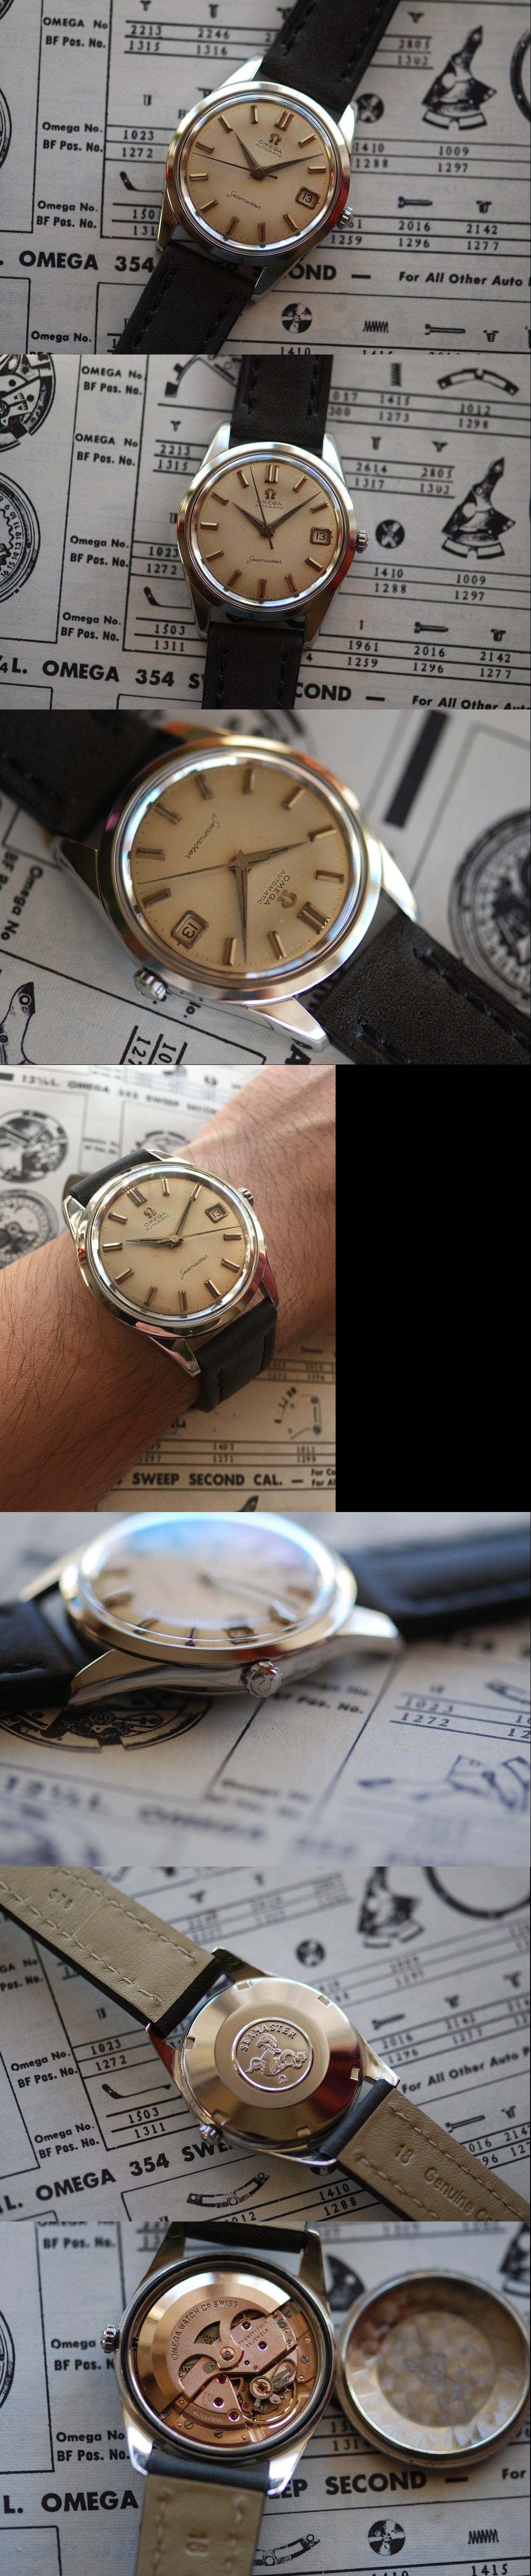 1961 Omega Seamaster Calendar Automatic Vintage Gent's Watch